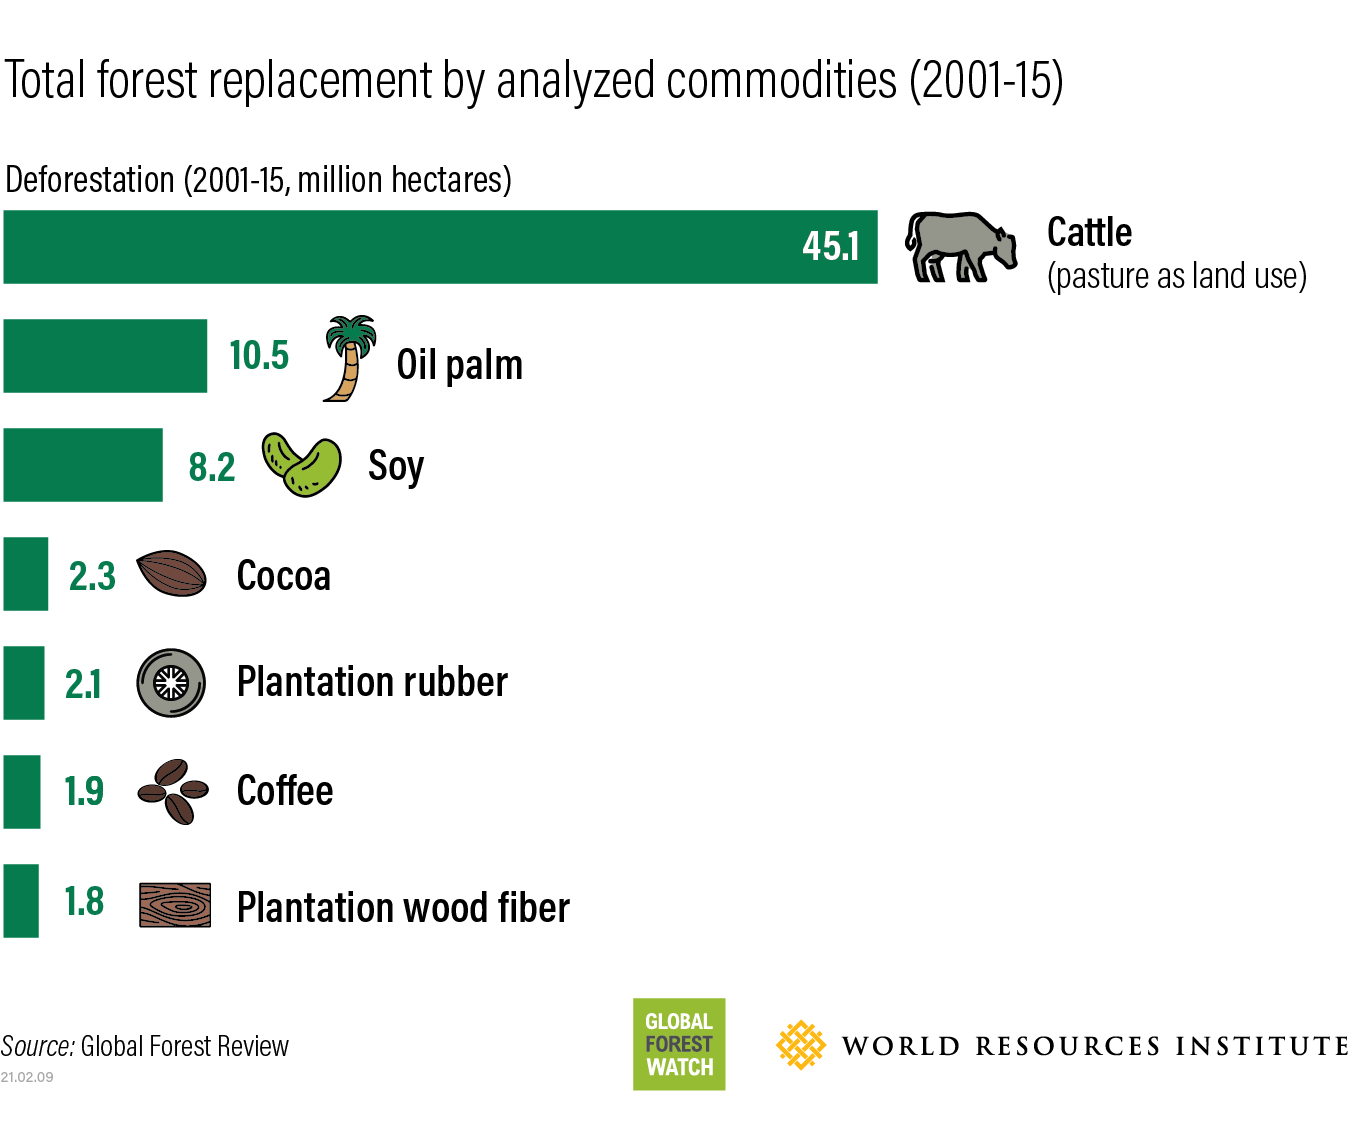 deforestation caused by cattle and other agricultural commodities